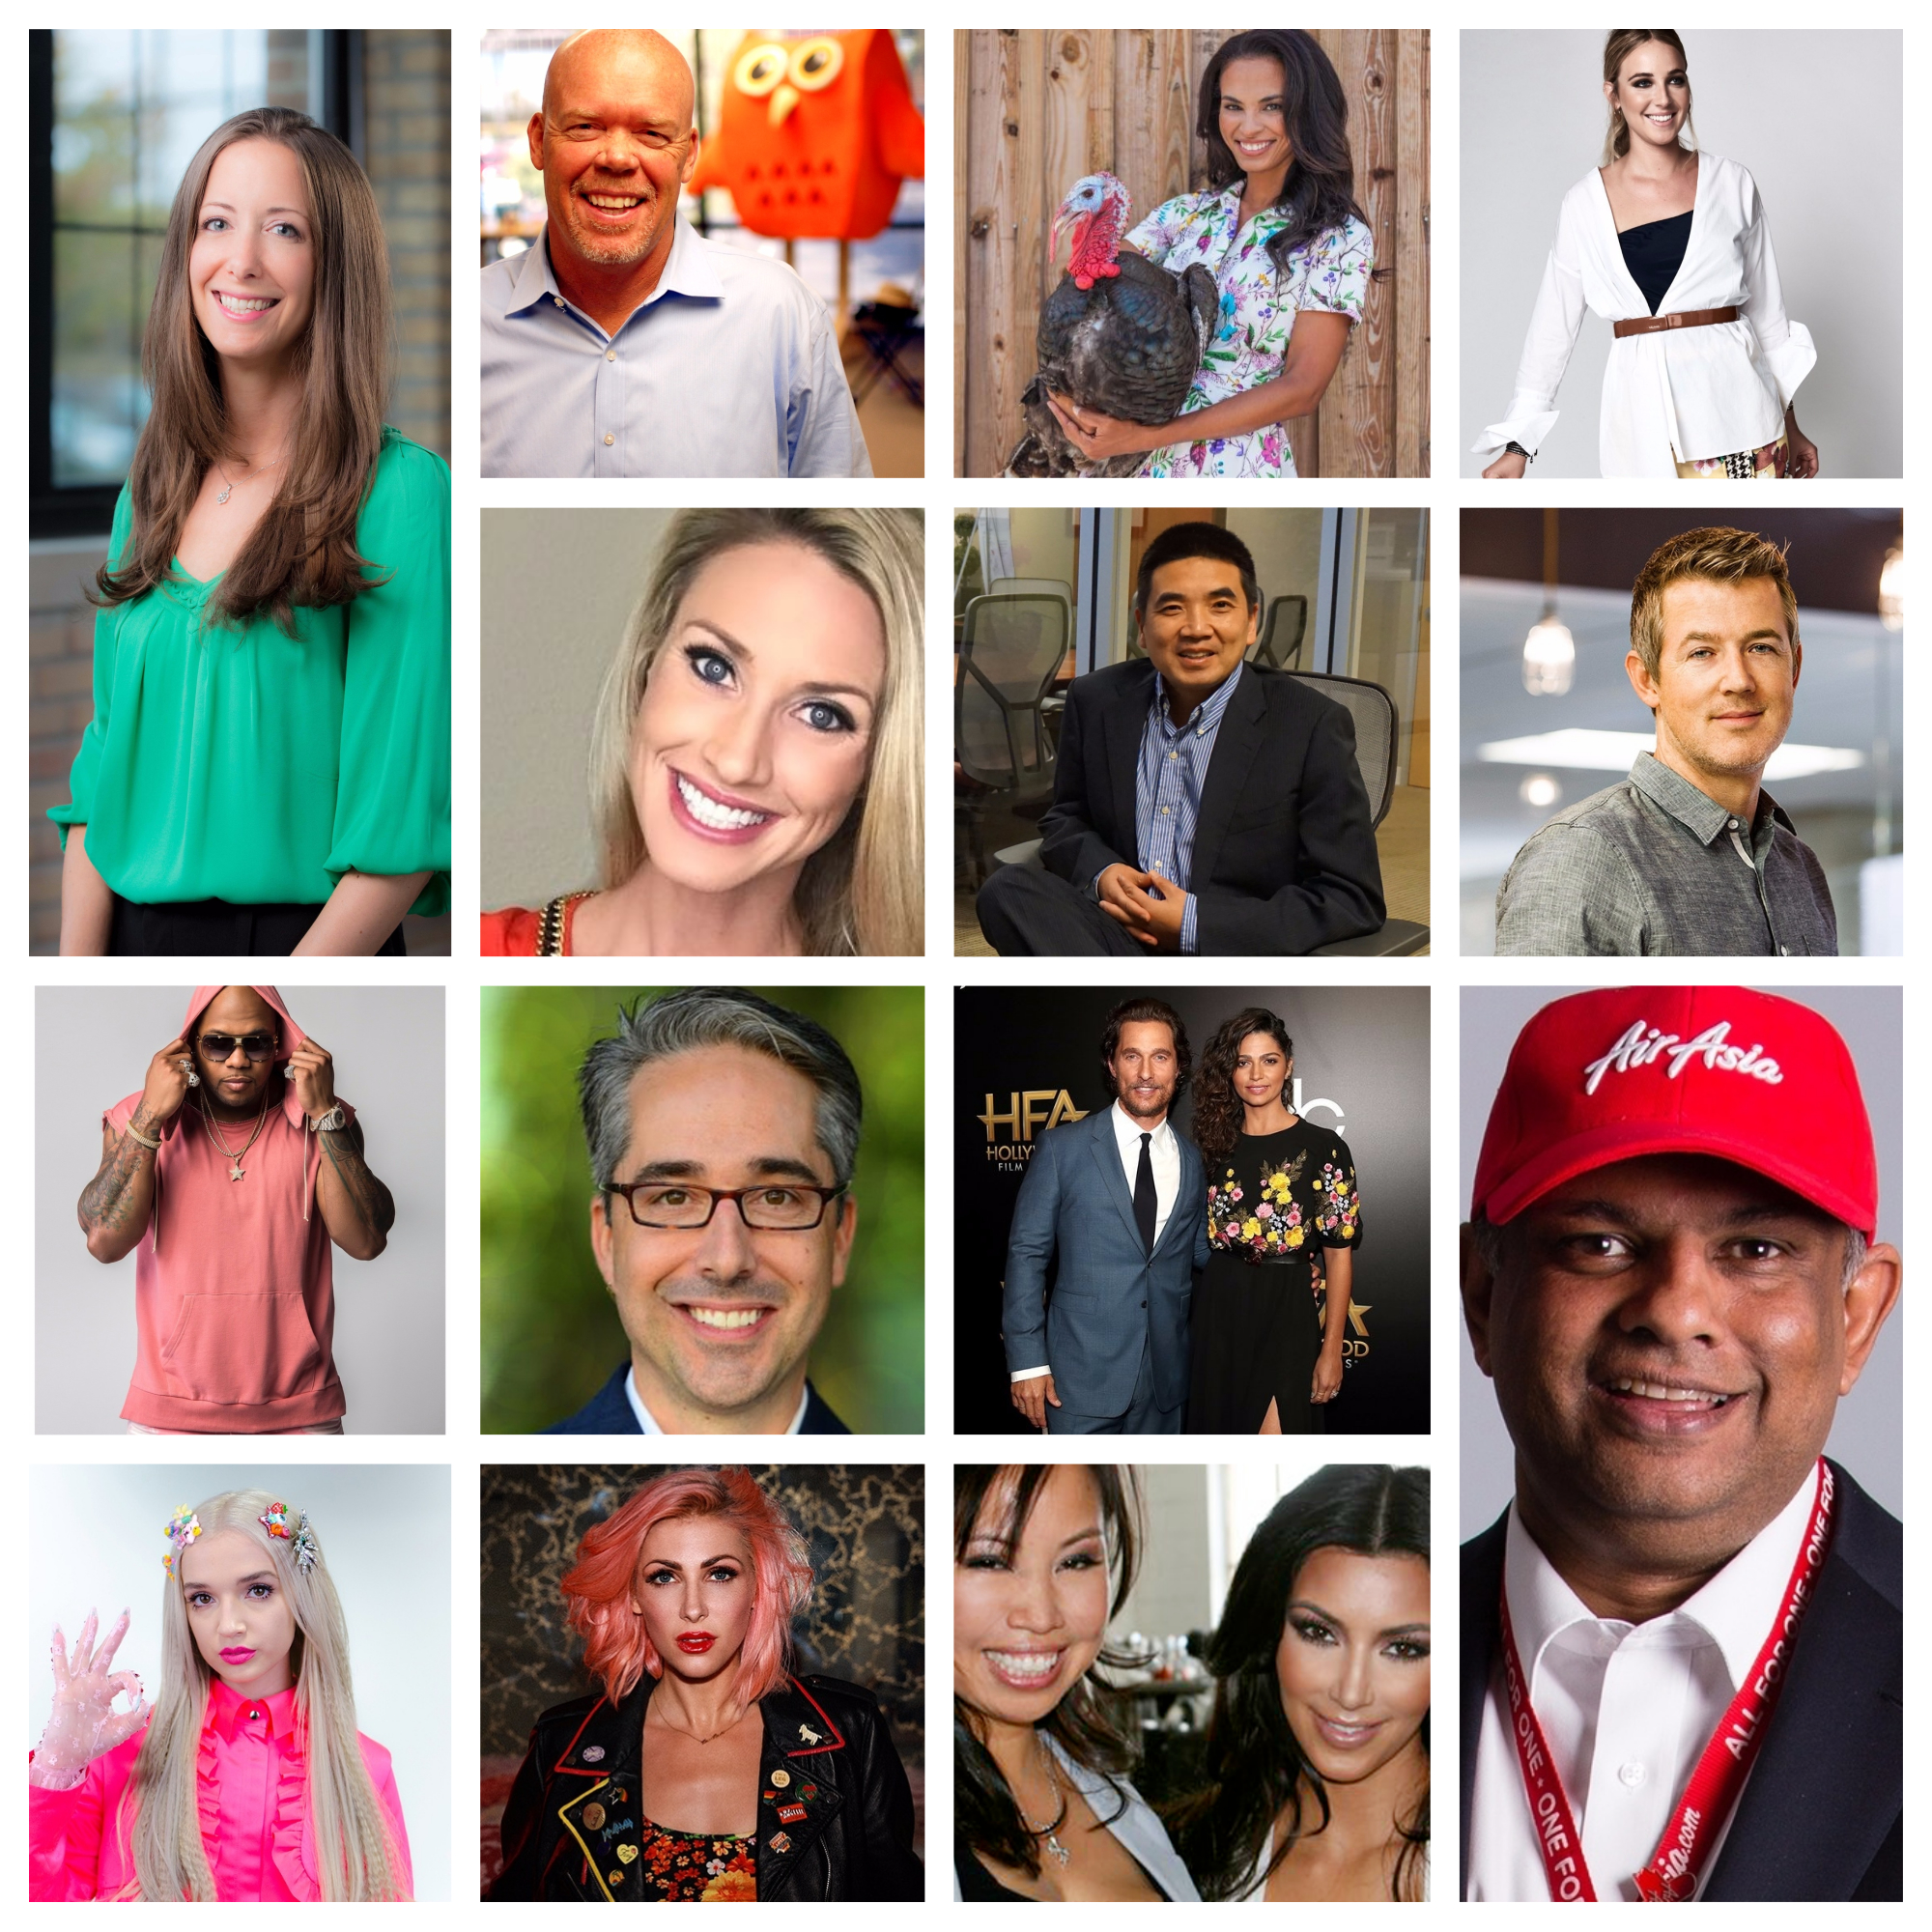 CEO's and Celebrities previously featured by TLI